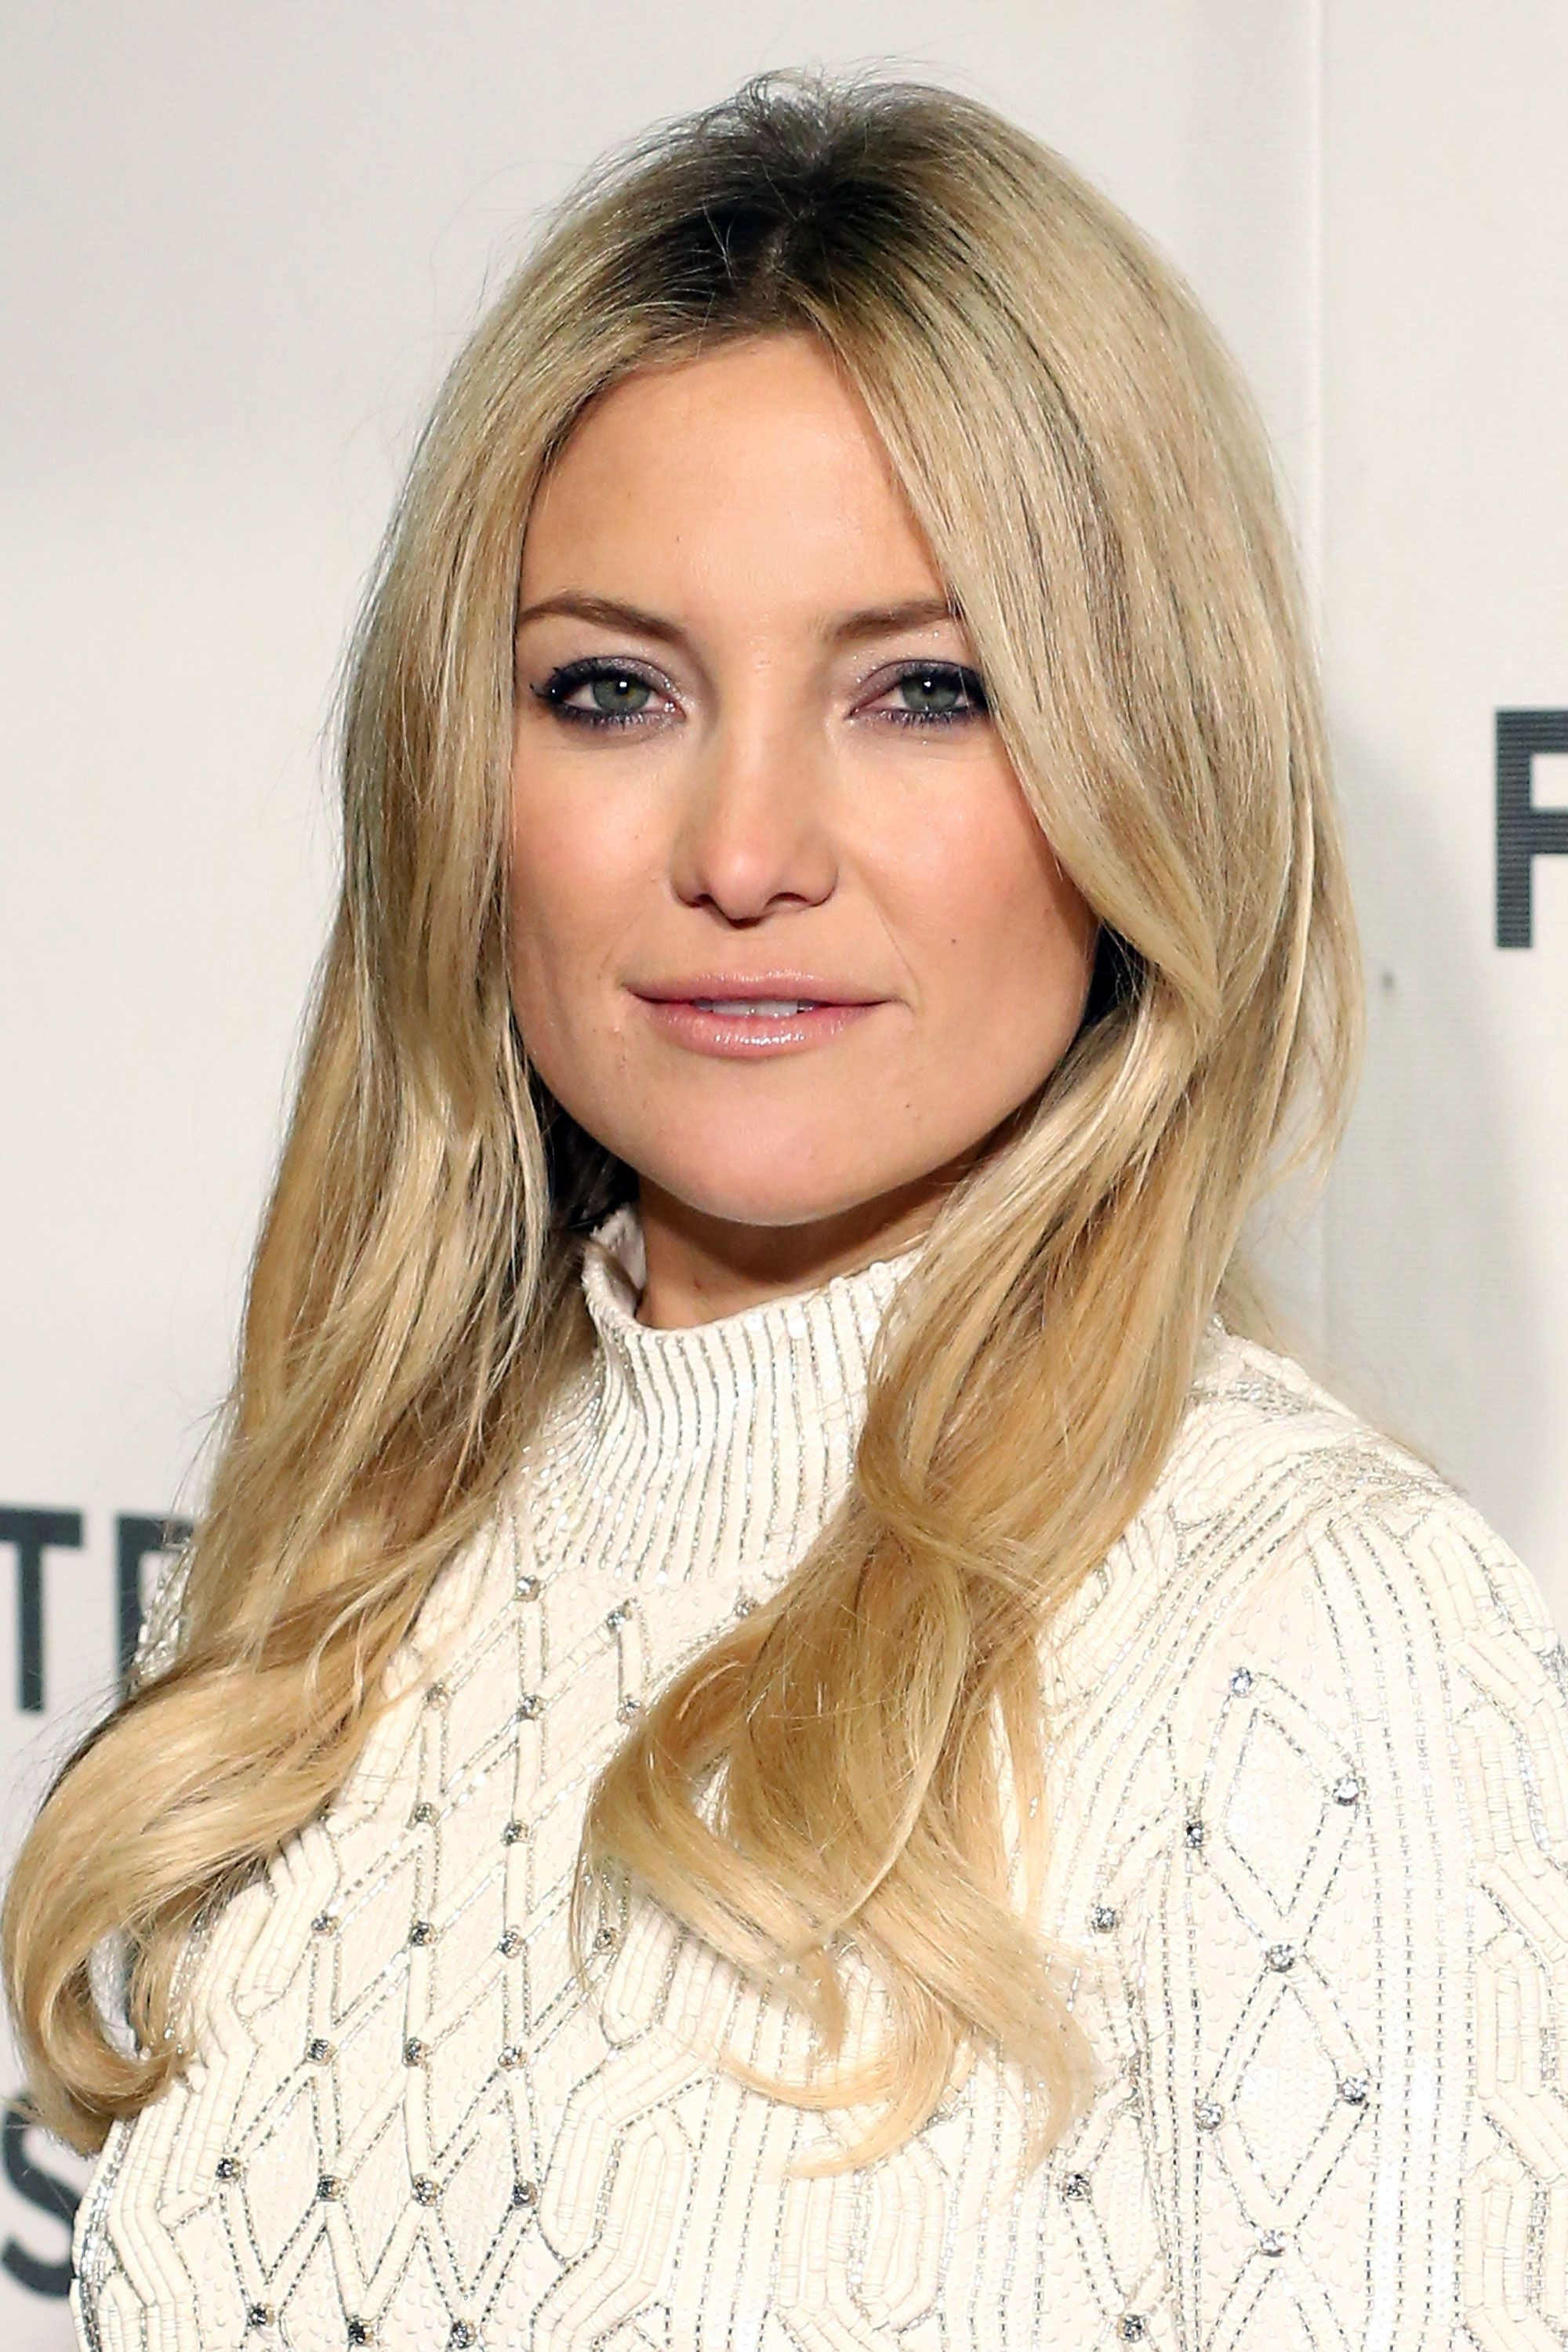 40 Of The Best Blonde Hair Ideas Pinterest Kate Hudson Hair